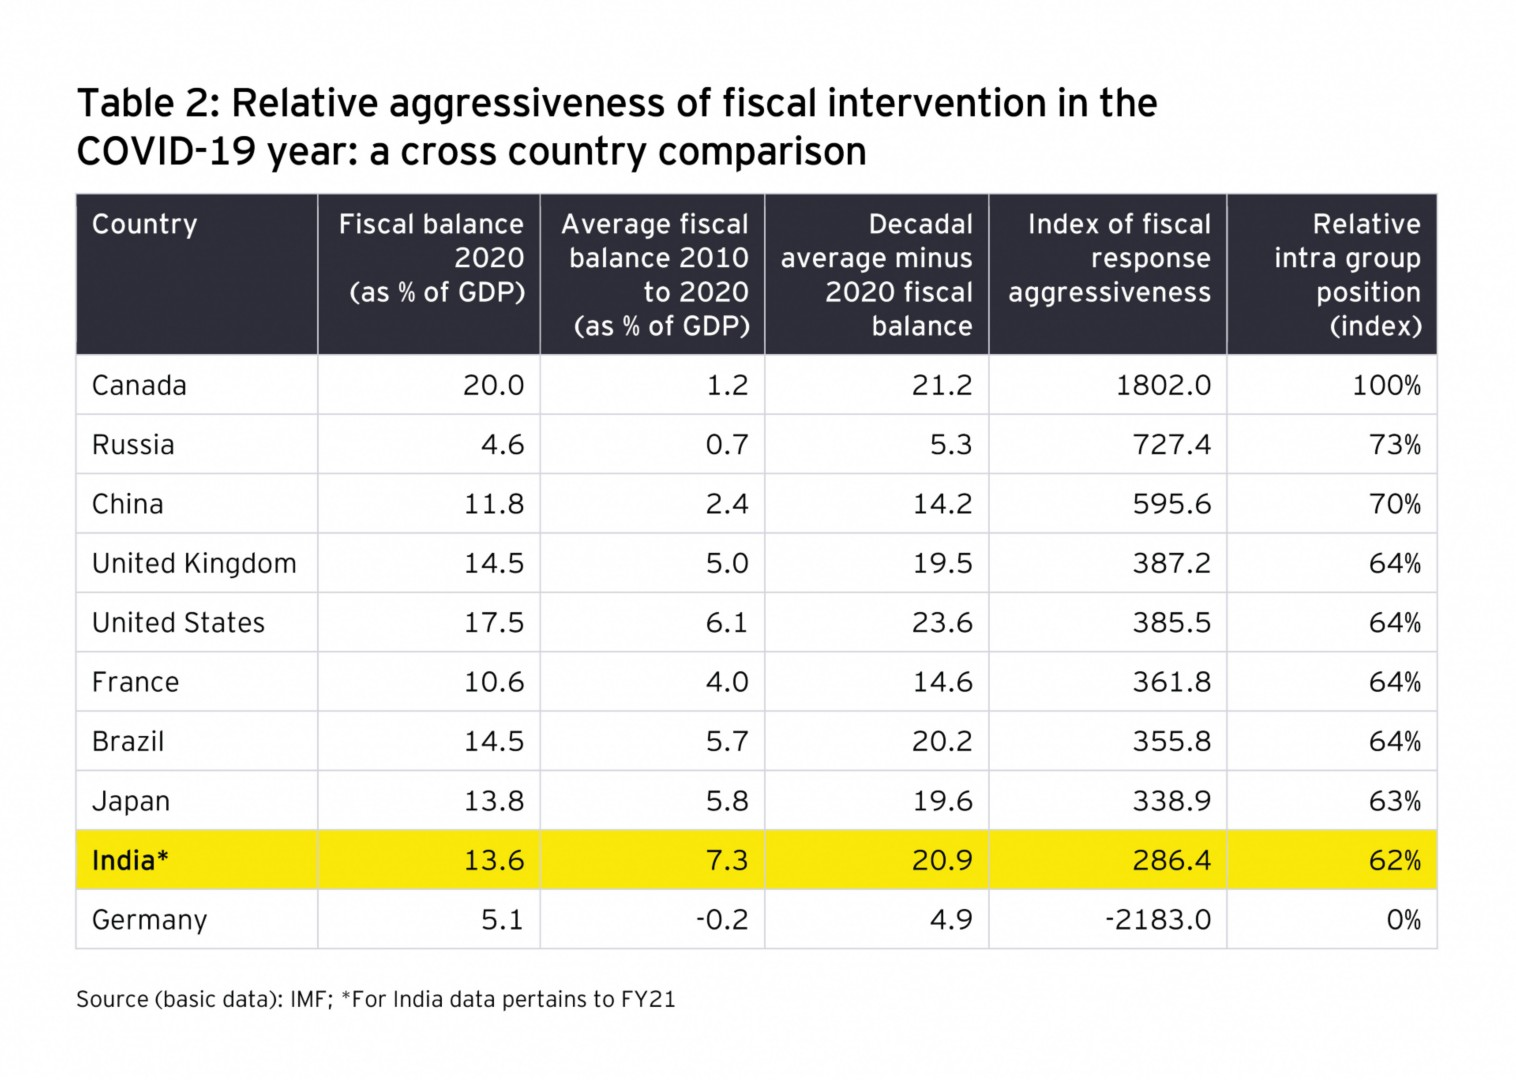 Relative aggressiveness of fiscal intervention in the Covid year: a cross country comparison